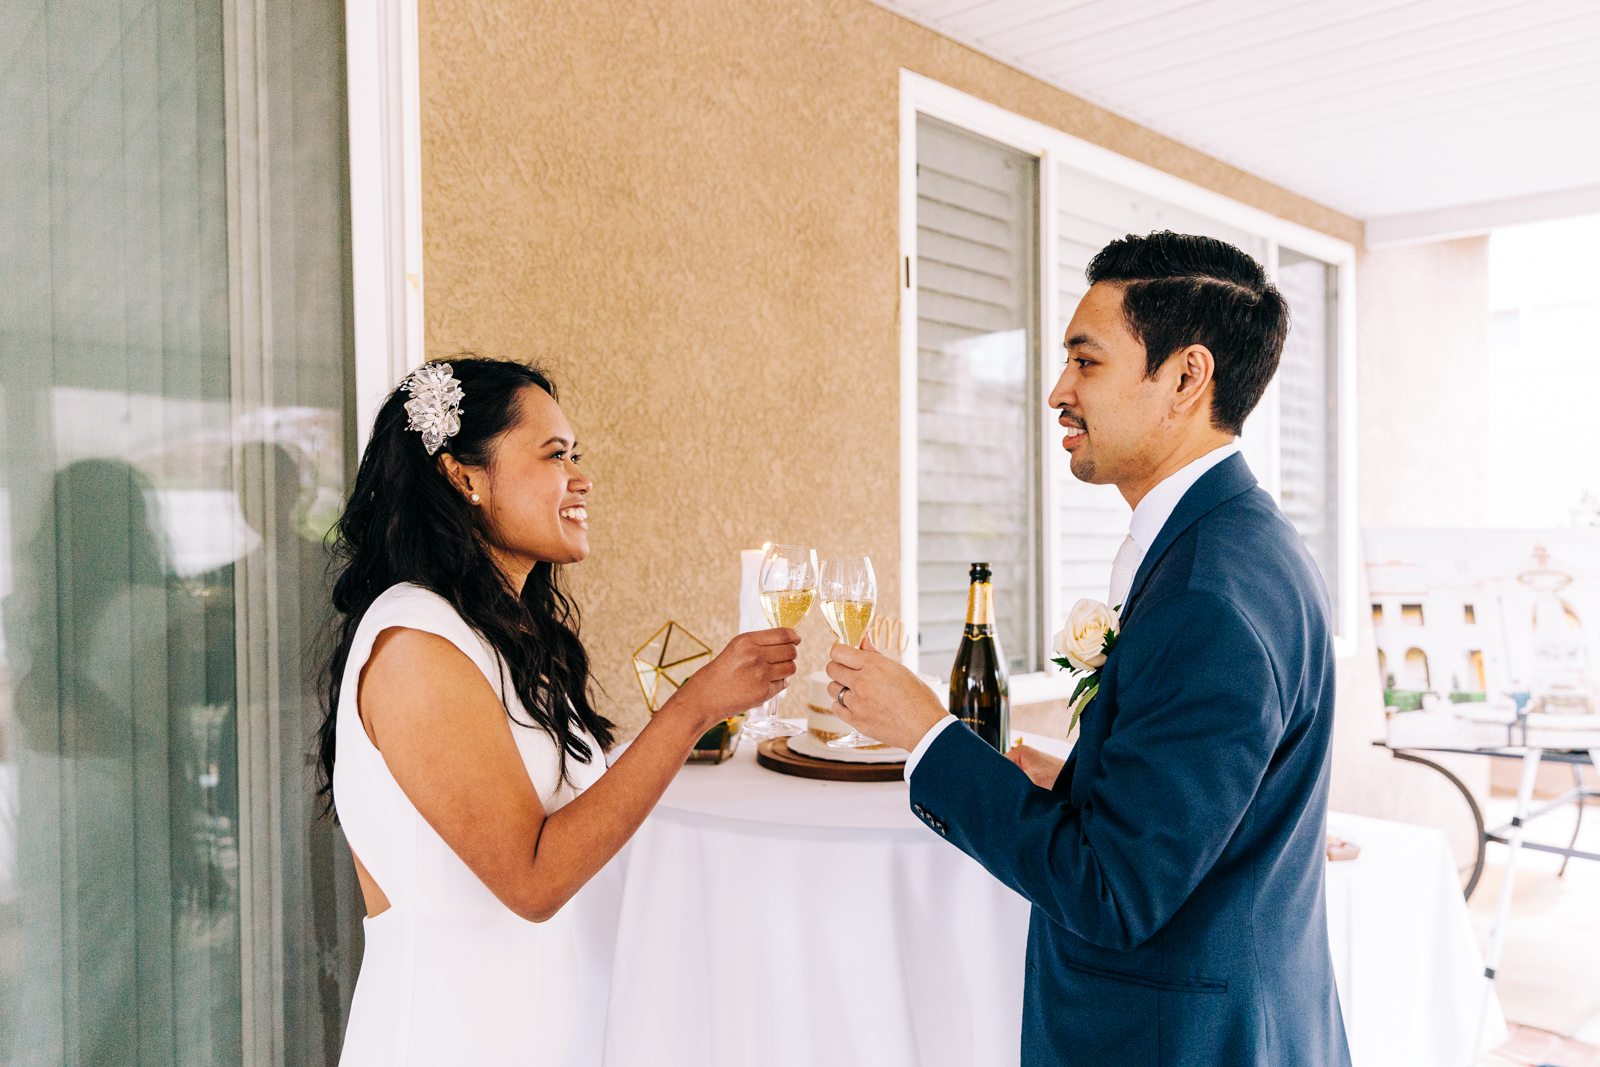 A bride and groom sharing a toast at their micro-wedding in Southern California.